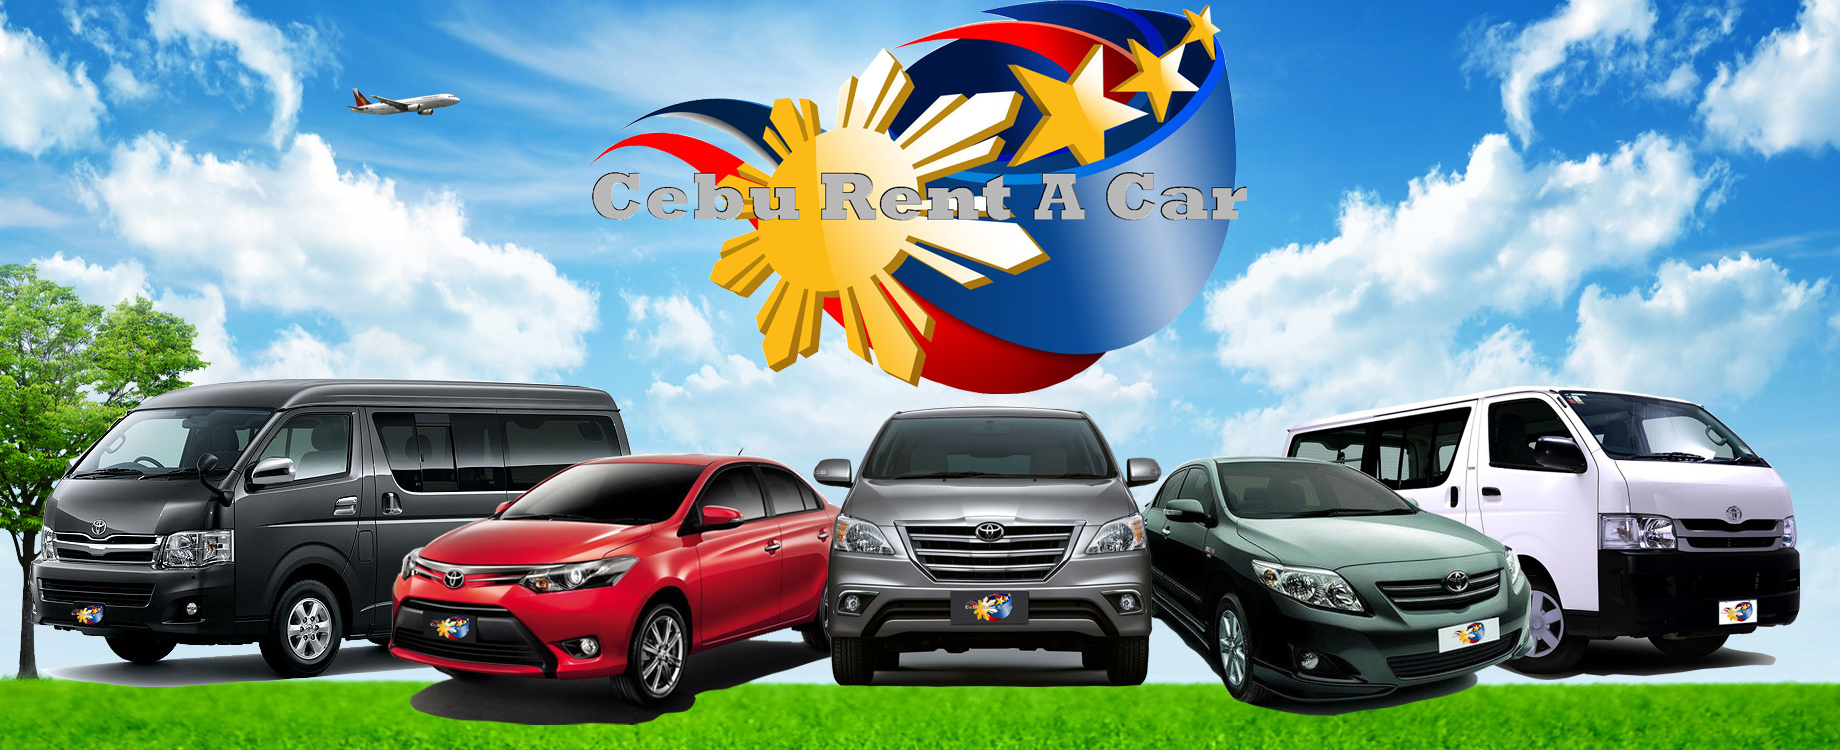 Rent A Car: Cebu Rent A Car